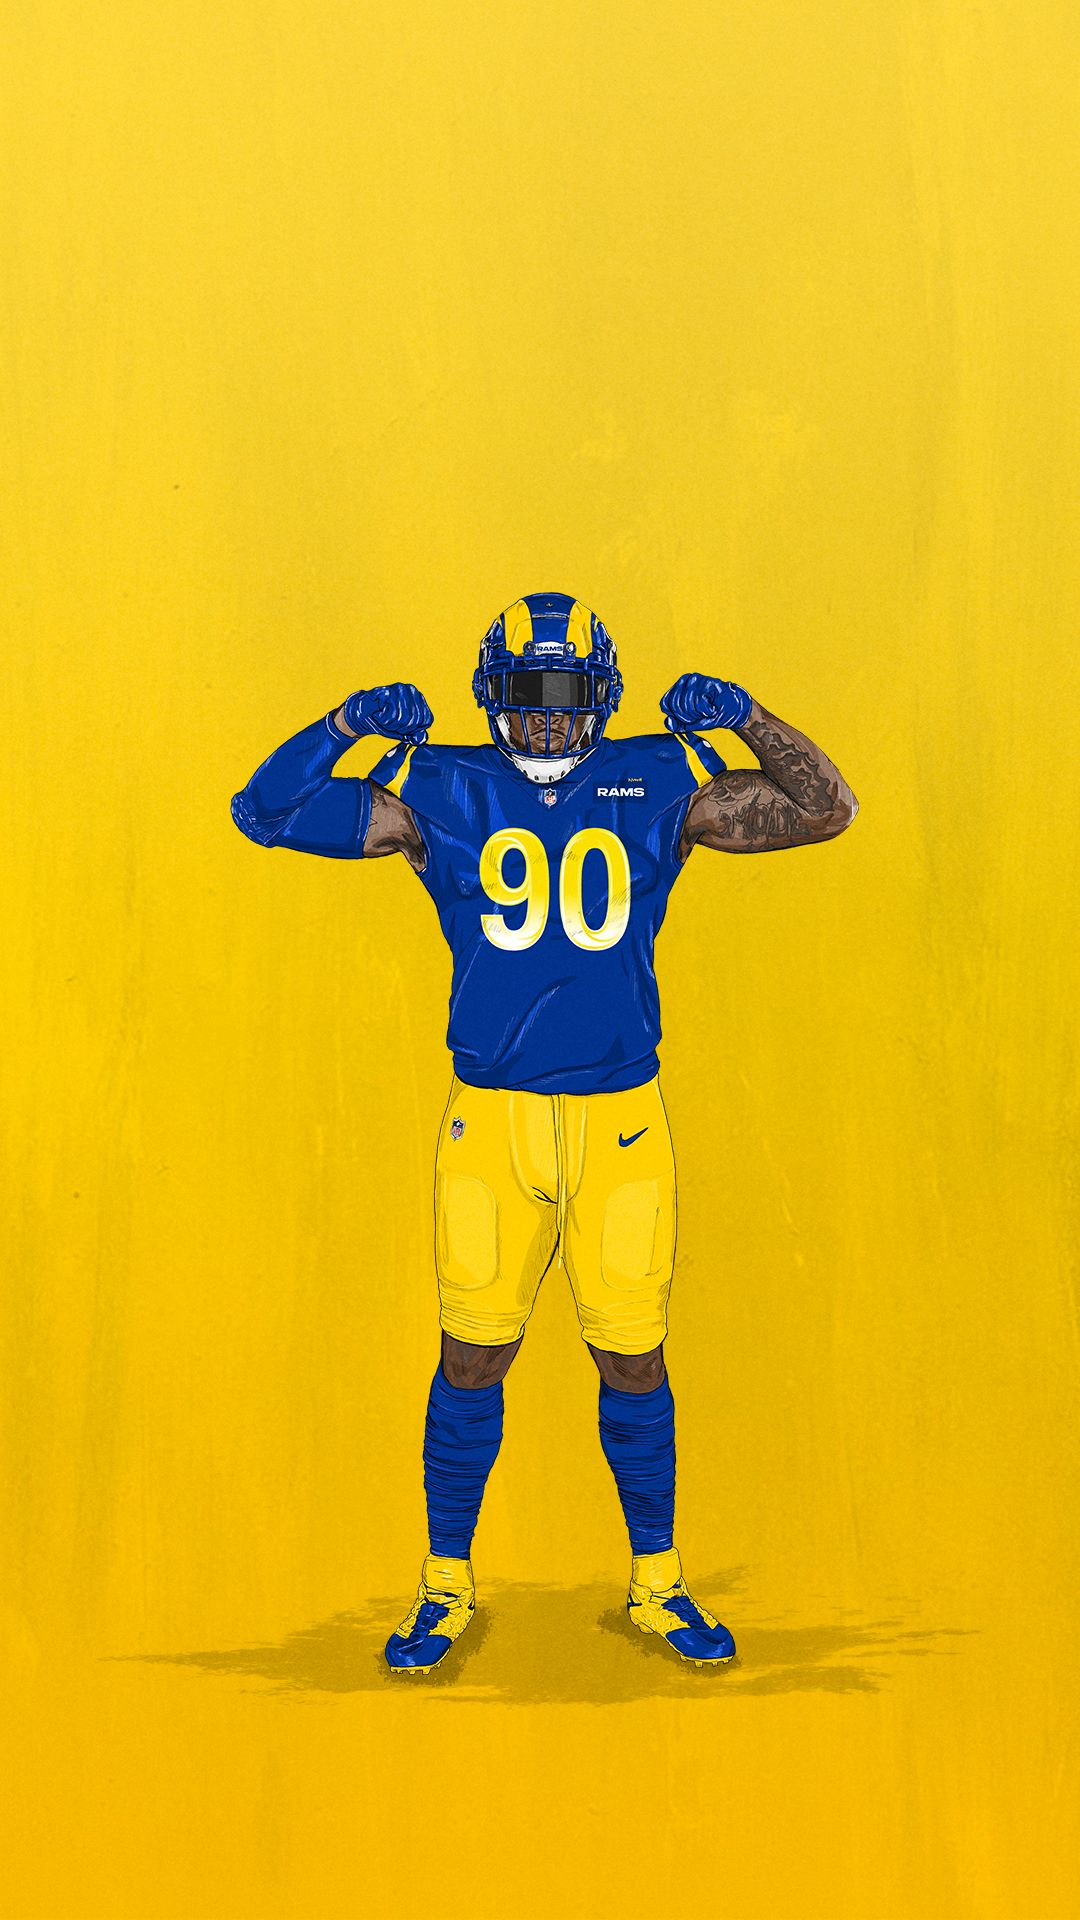 RAMS2020_NewJerseyIllustration_Brockers(9x16)